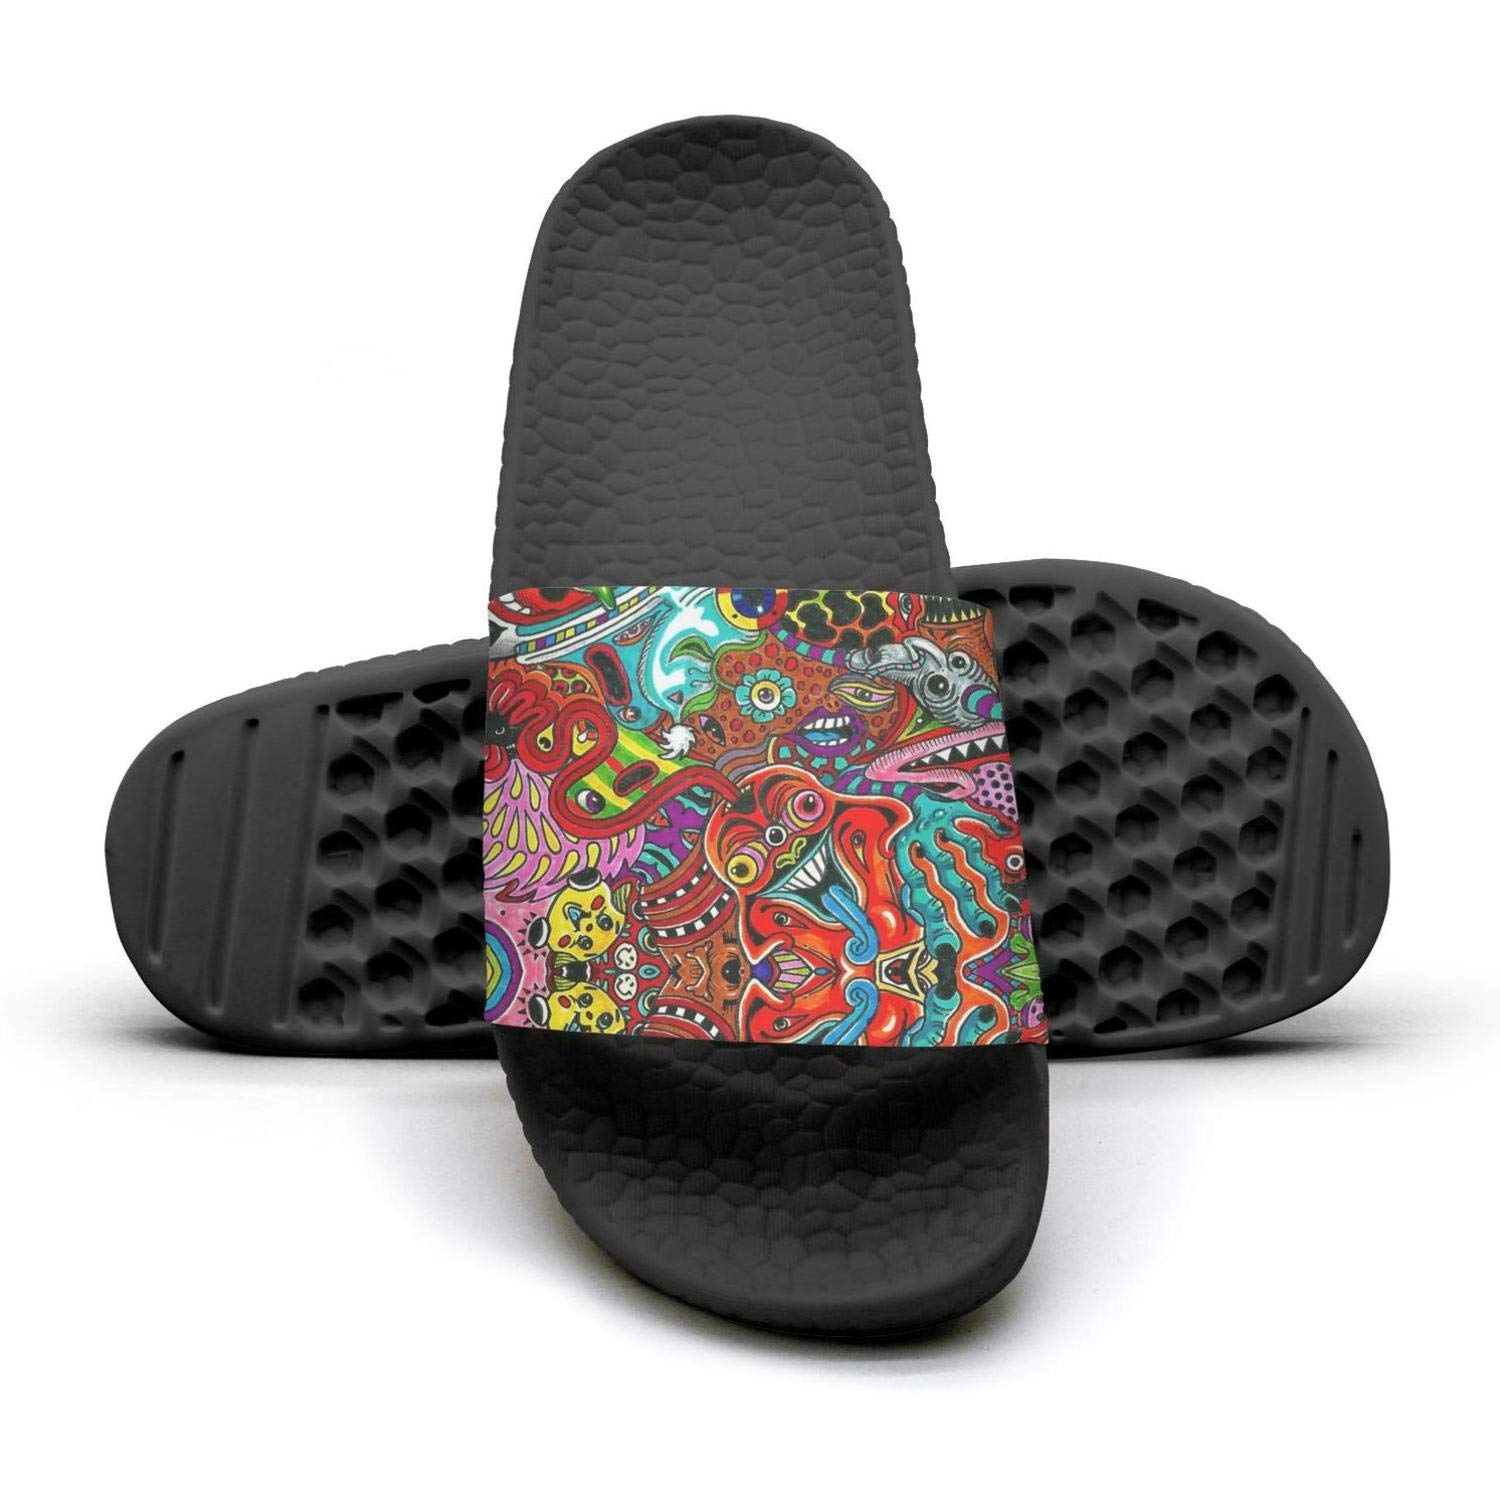 Womens Slides Shoes Athletic Spiral Psychedelic Colorful Sandal Extra-Soft Bathroom Slip On